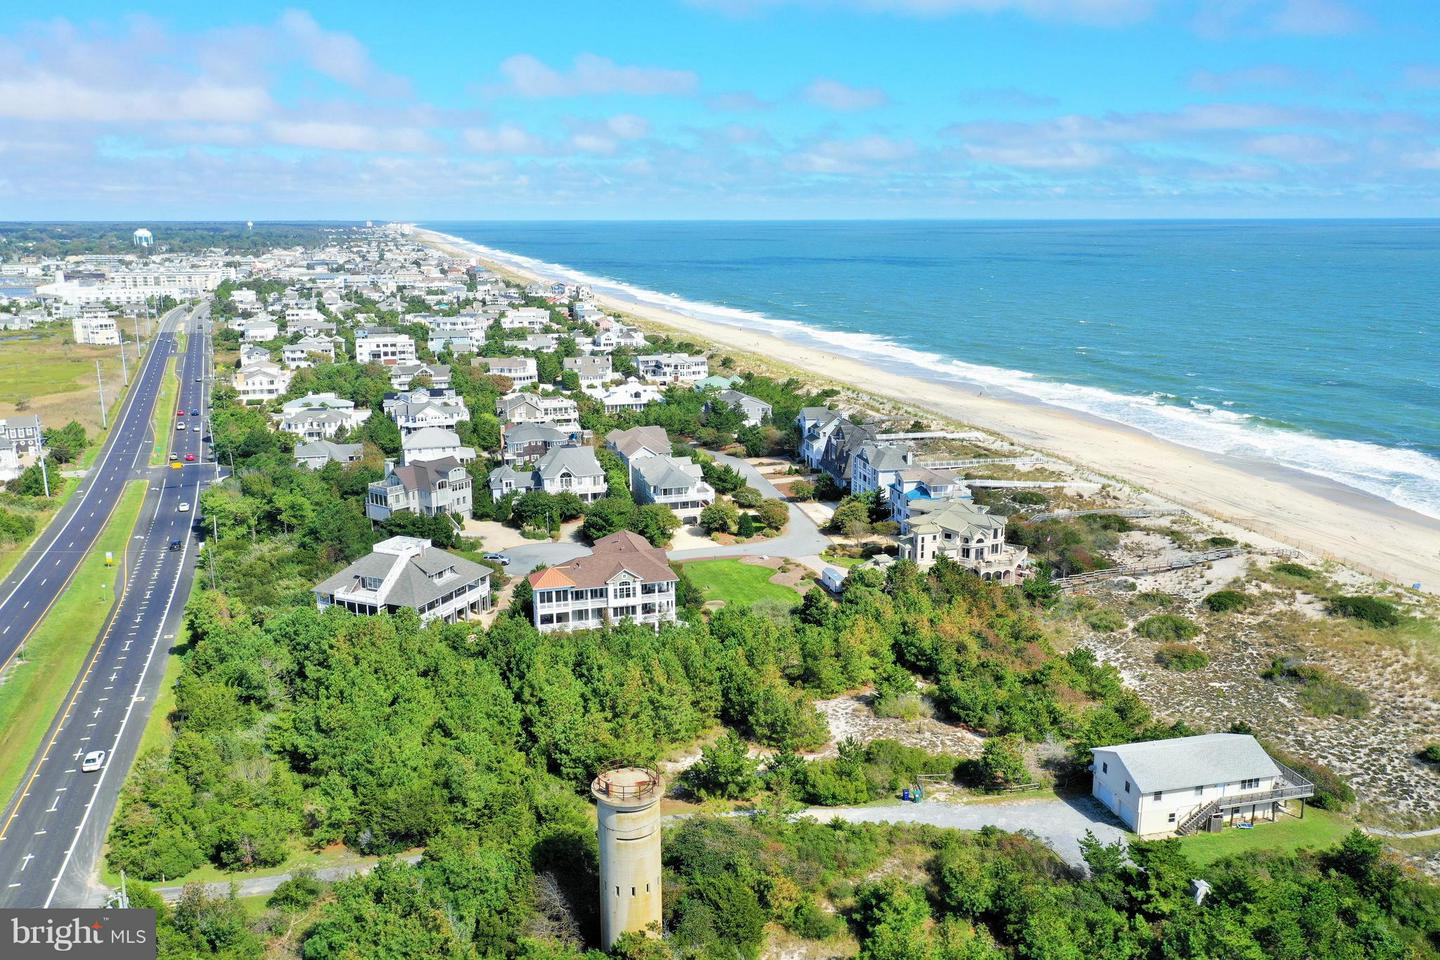 1002293530-300720130827-2018-09-25-15-08-25 31 Hall Ave | Rehoboth Beach, DE Real Estate For Sale | MLS# 1002293530  - Jack Lingo REALTOR